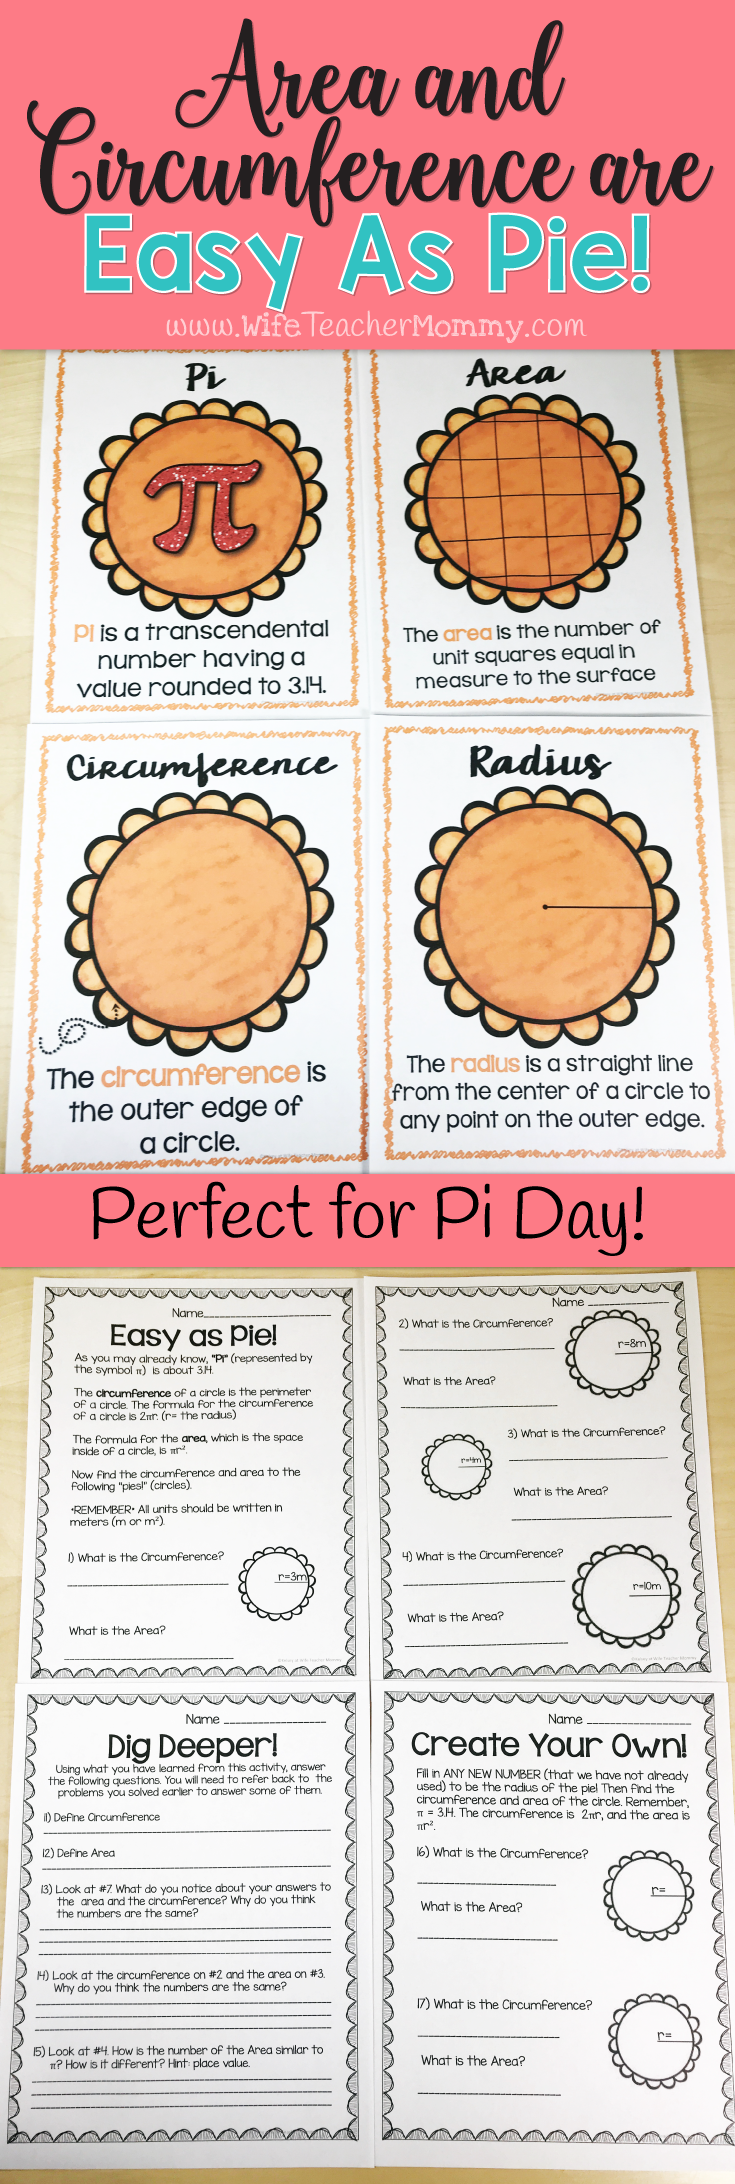 Area And Circumference Worksheets Pi Day Worksheets Thanksgiving Worksheets These Workshee Teaching Thanksgiving Thanksgiving Worksheets Teaching Elementary [ 2184 x 735 Pixel ]